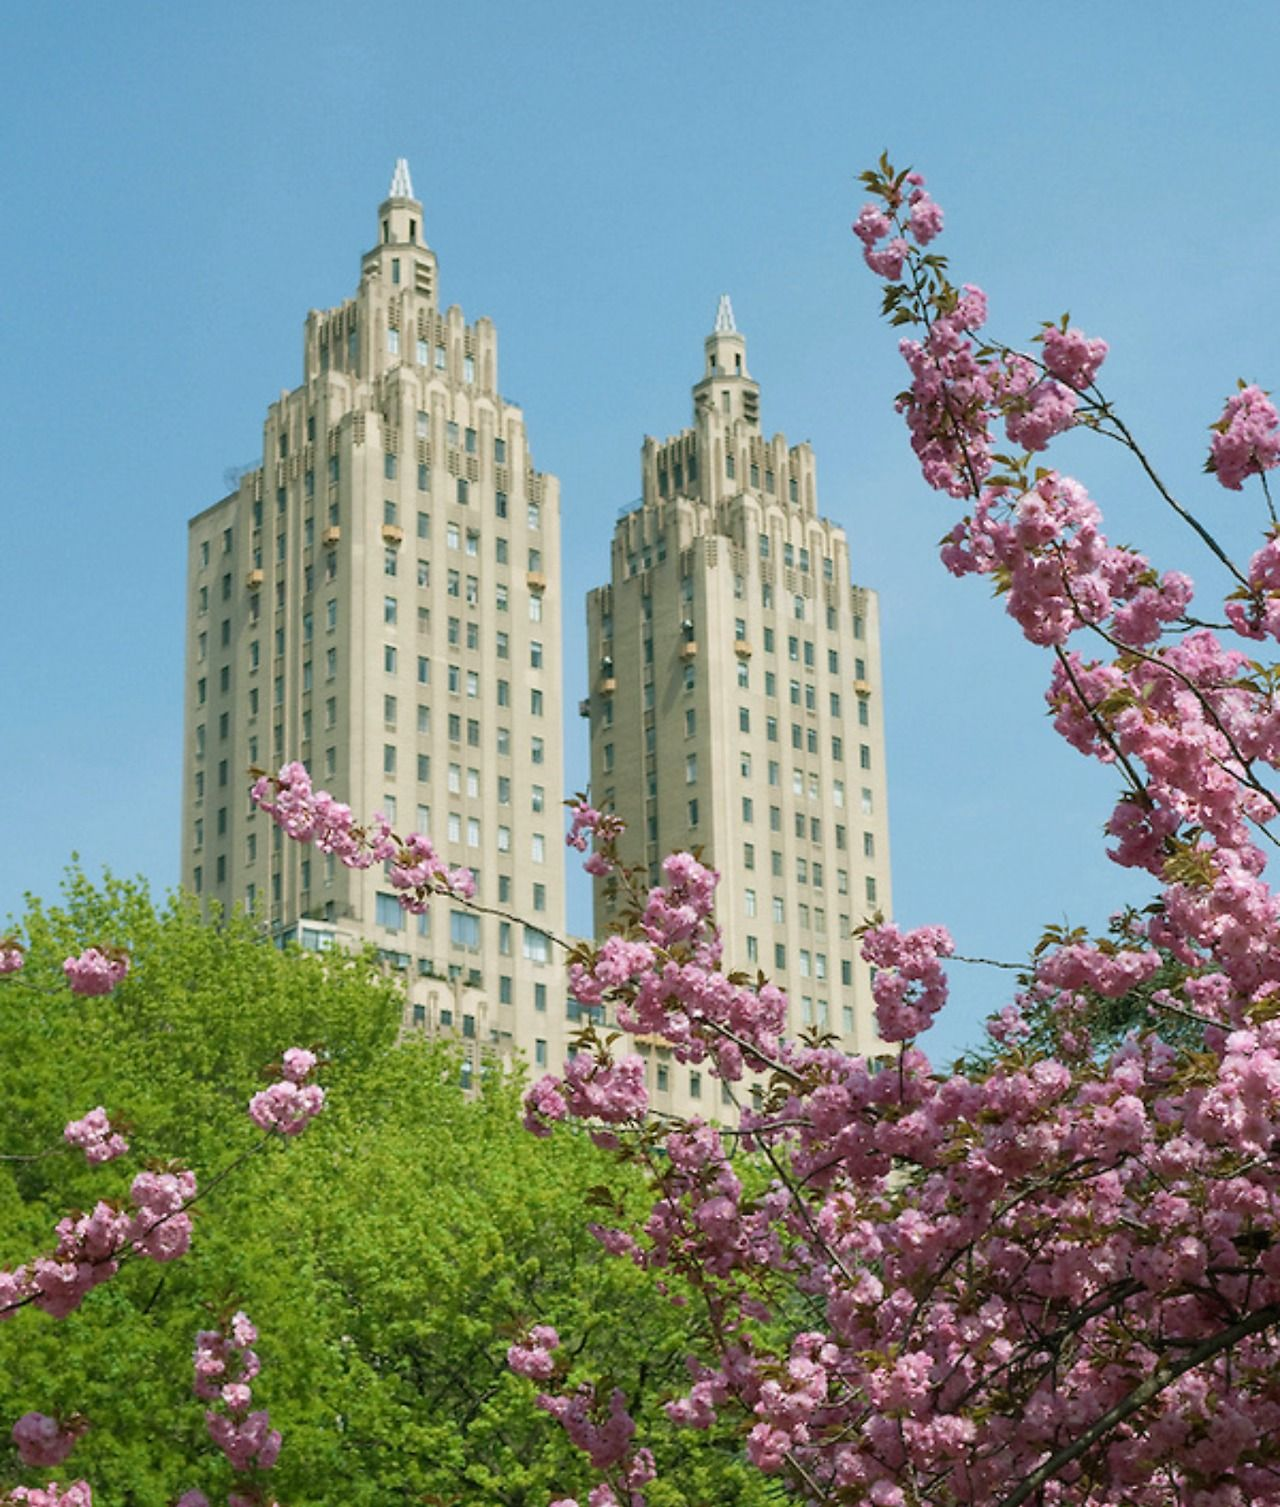 Cherry blossoms in Central Park and The El Dorado, Central Park West, New York City. Designed by Margon & Holder, 1931